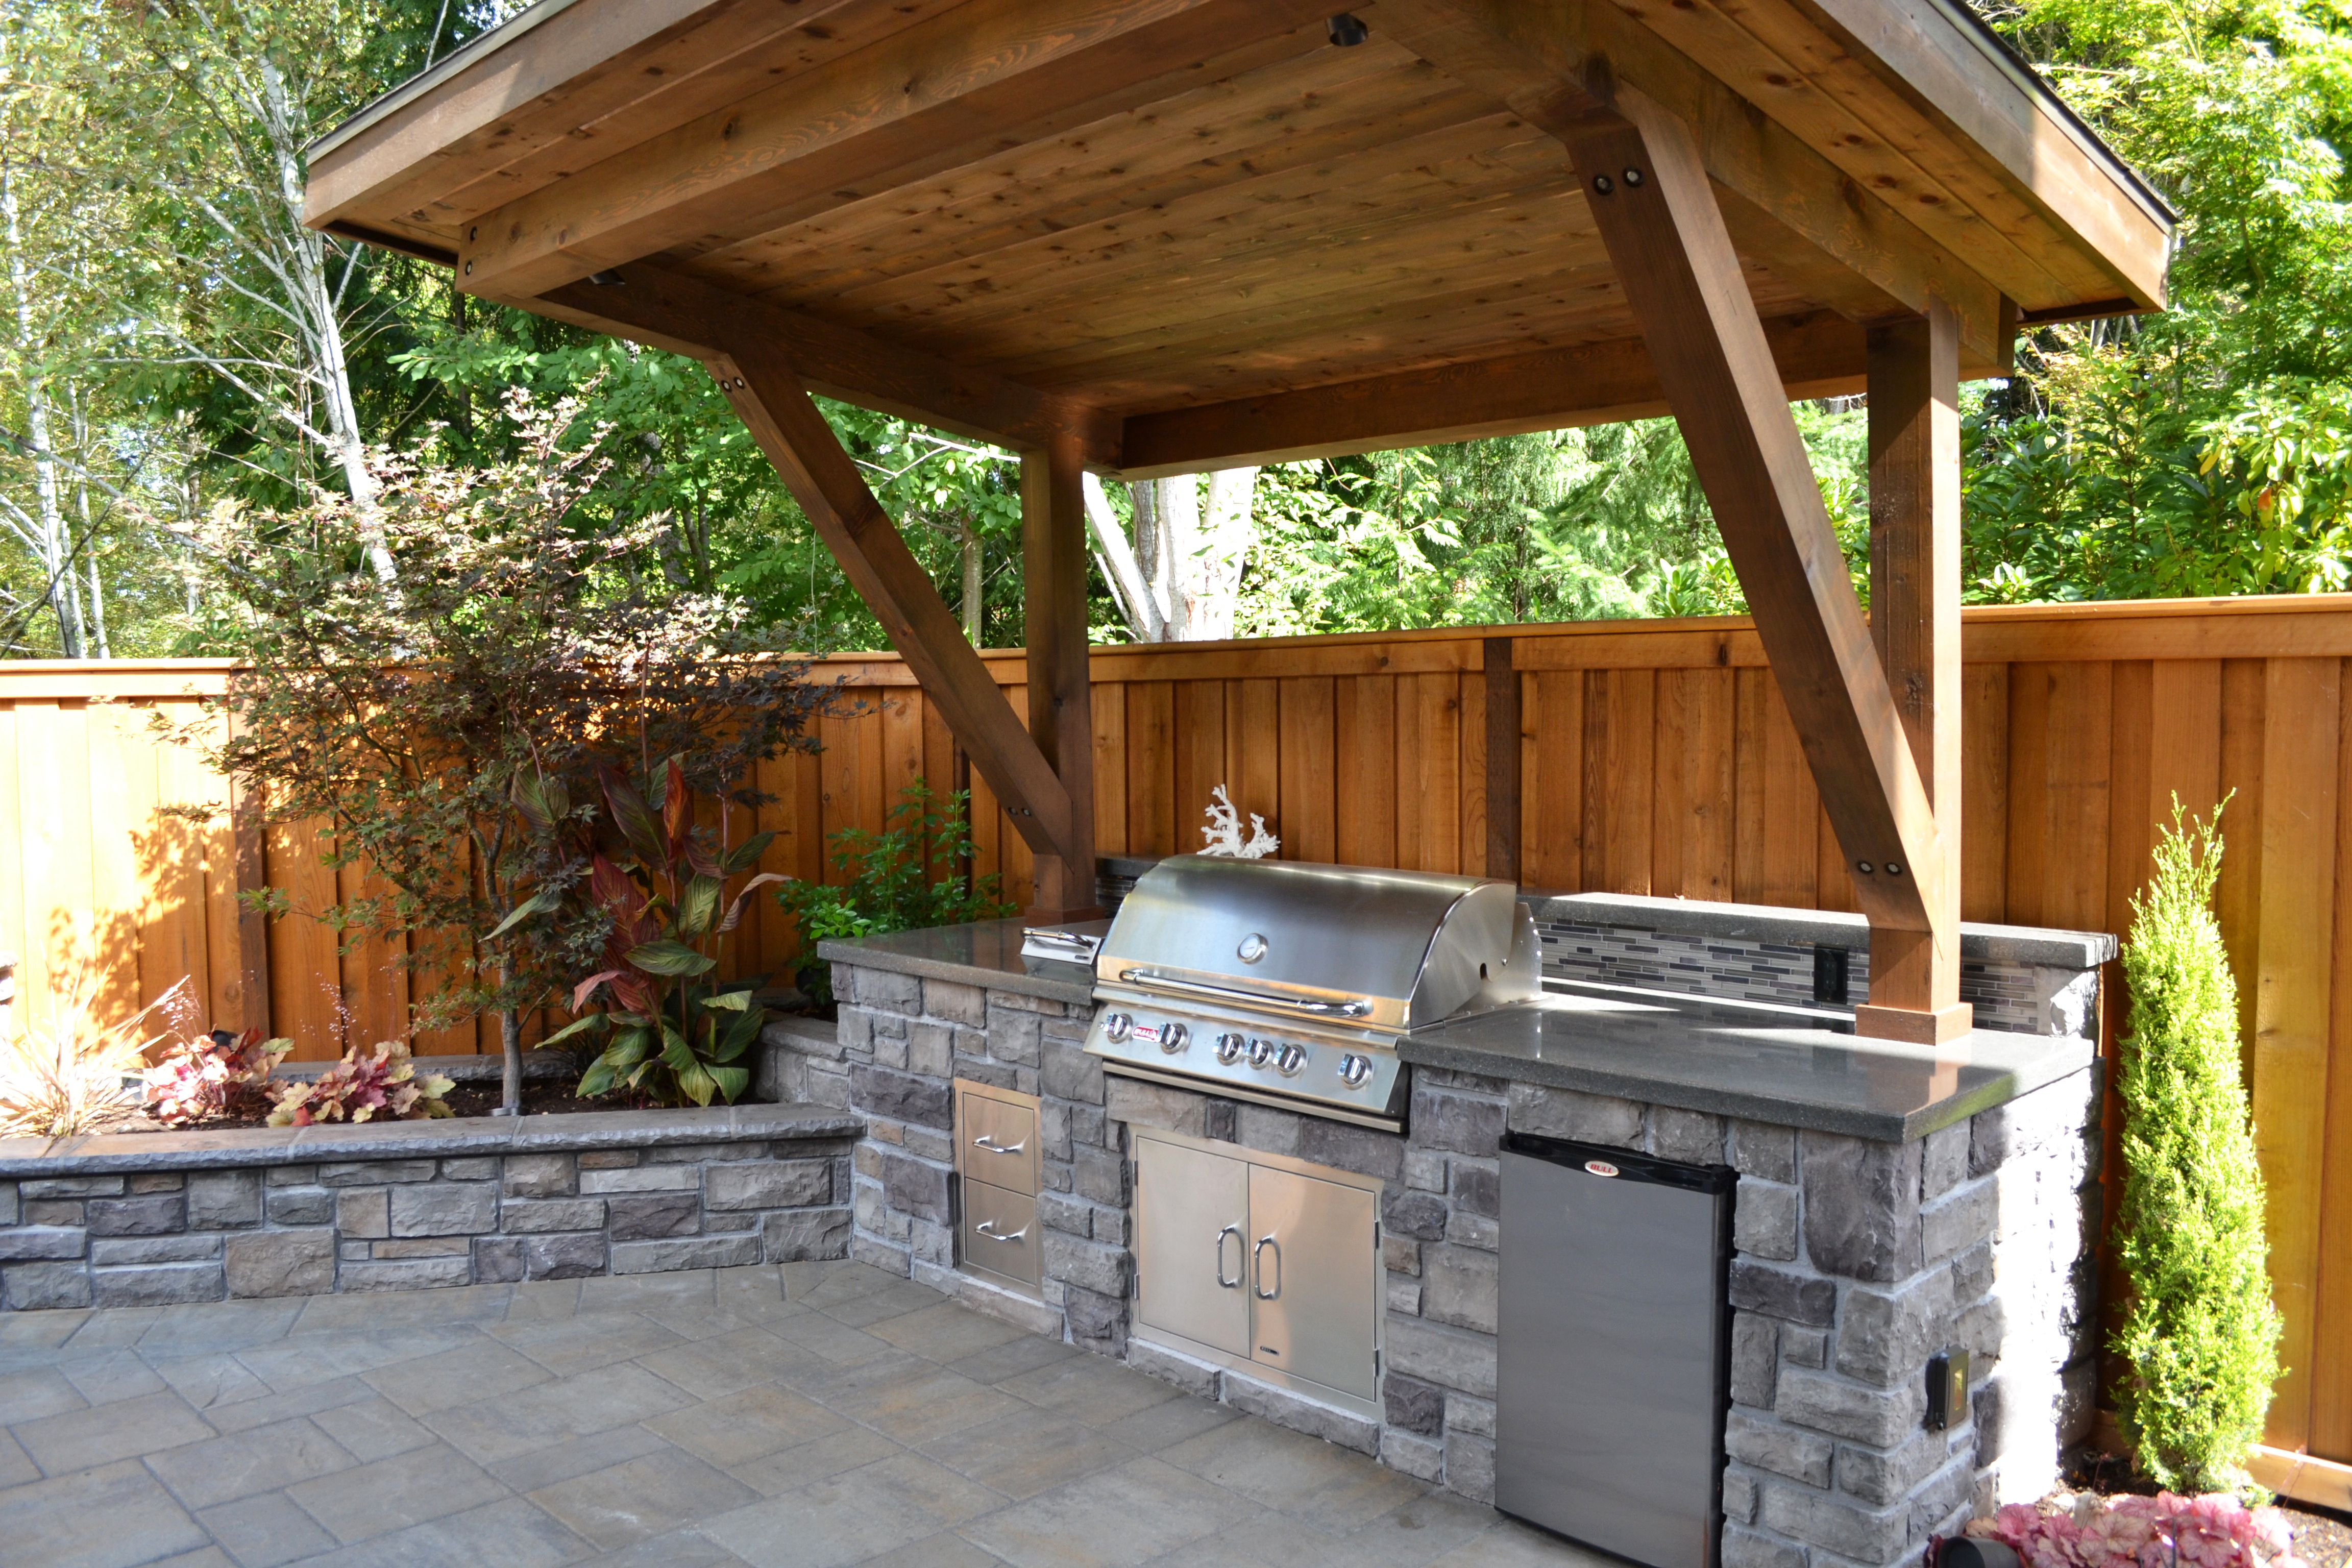 Design And Installation By All Oregon Landscape Inc Cantilever Cover Over Bbq With Concrete Counte Rustic Outdoor Kitchens Rustic Patio Small Outdoor Kitchens